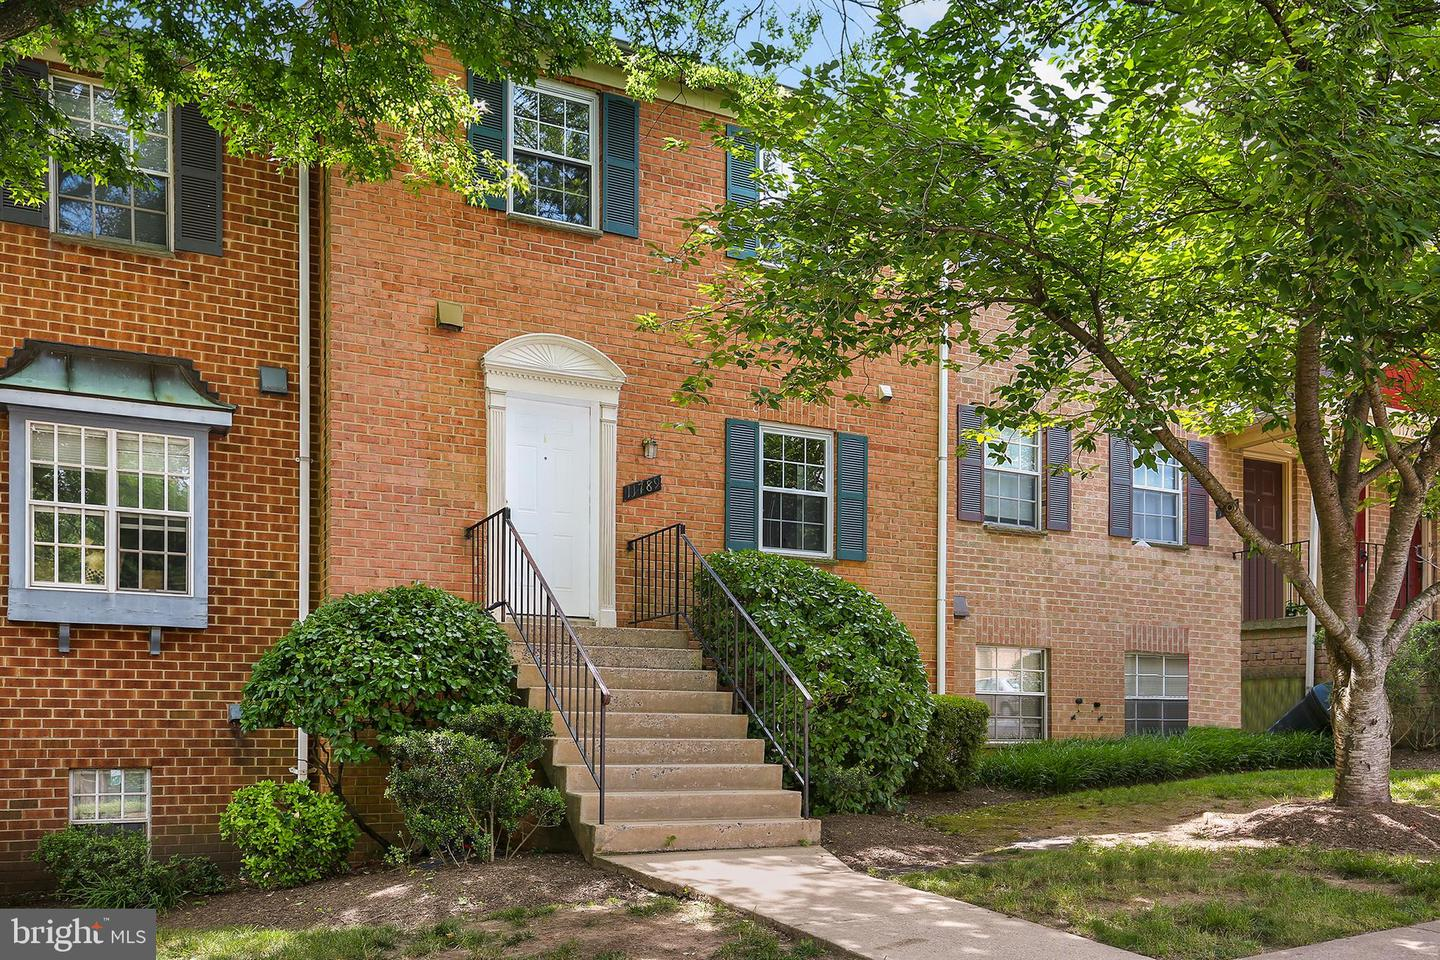 11789 CARRIAGE HOUSE DRIVE 27, SILVER SPRING, Maryland